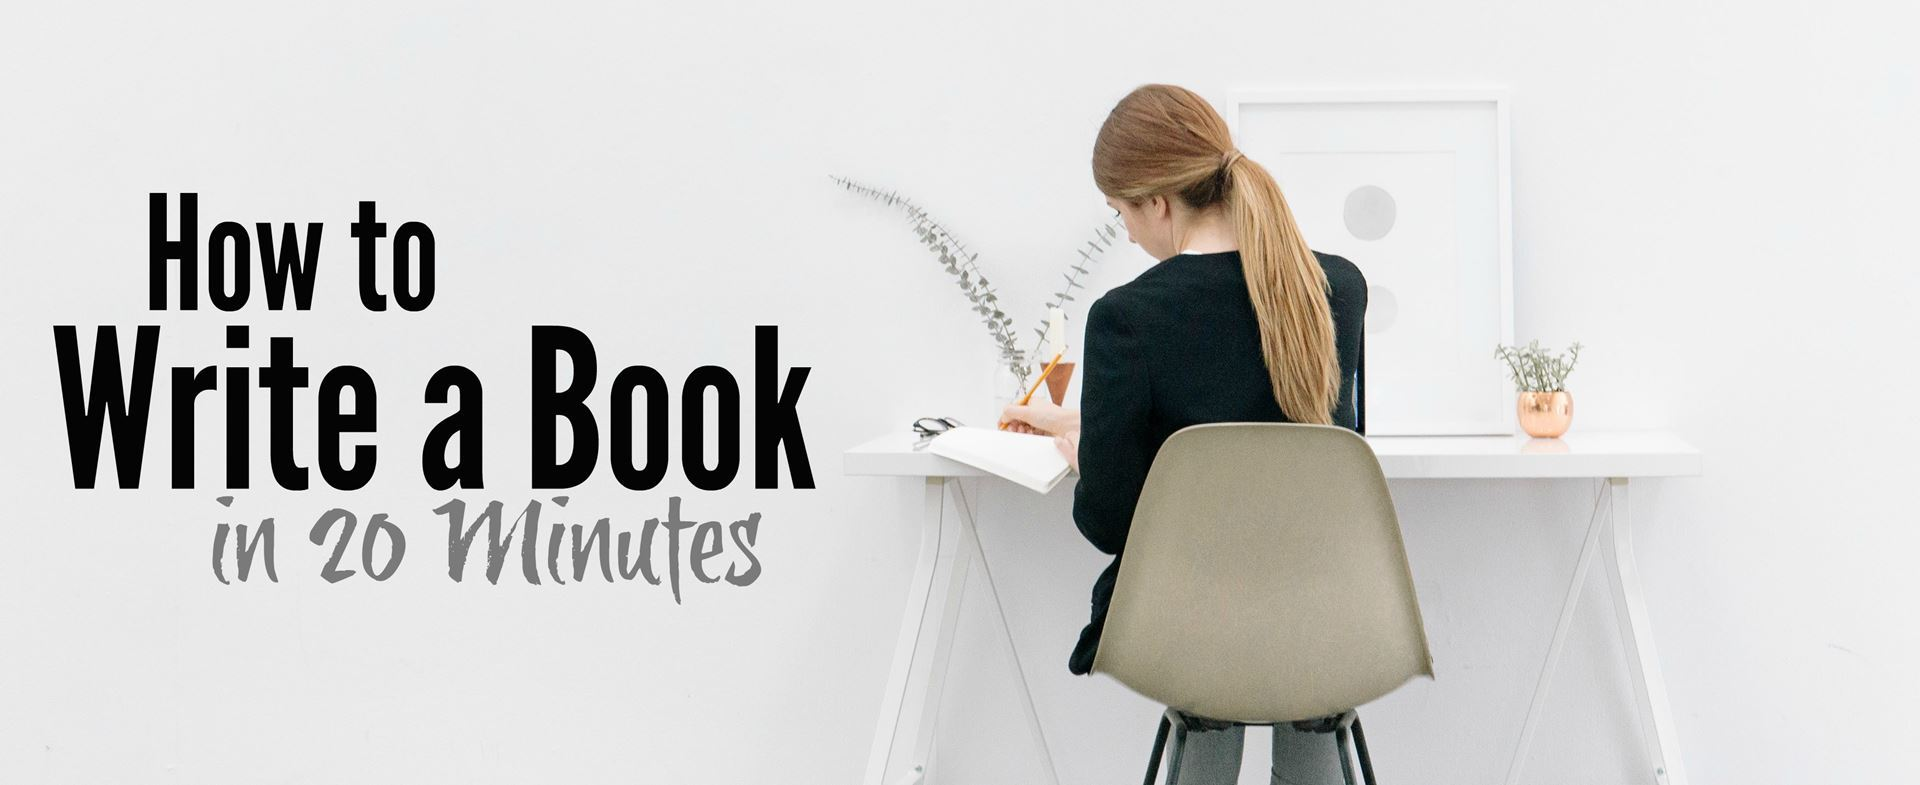 How to Write a Book in 20 Minutes Seminar at Hatch